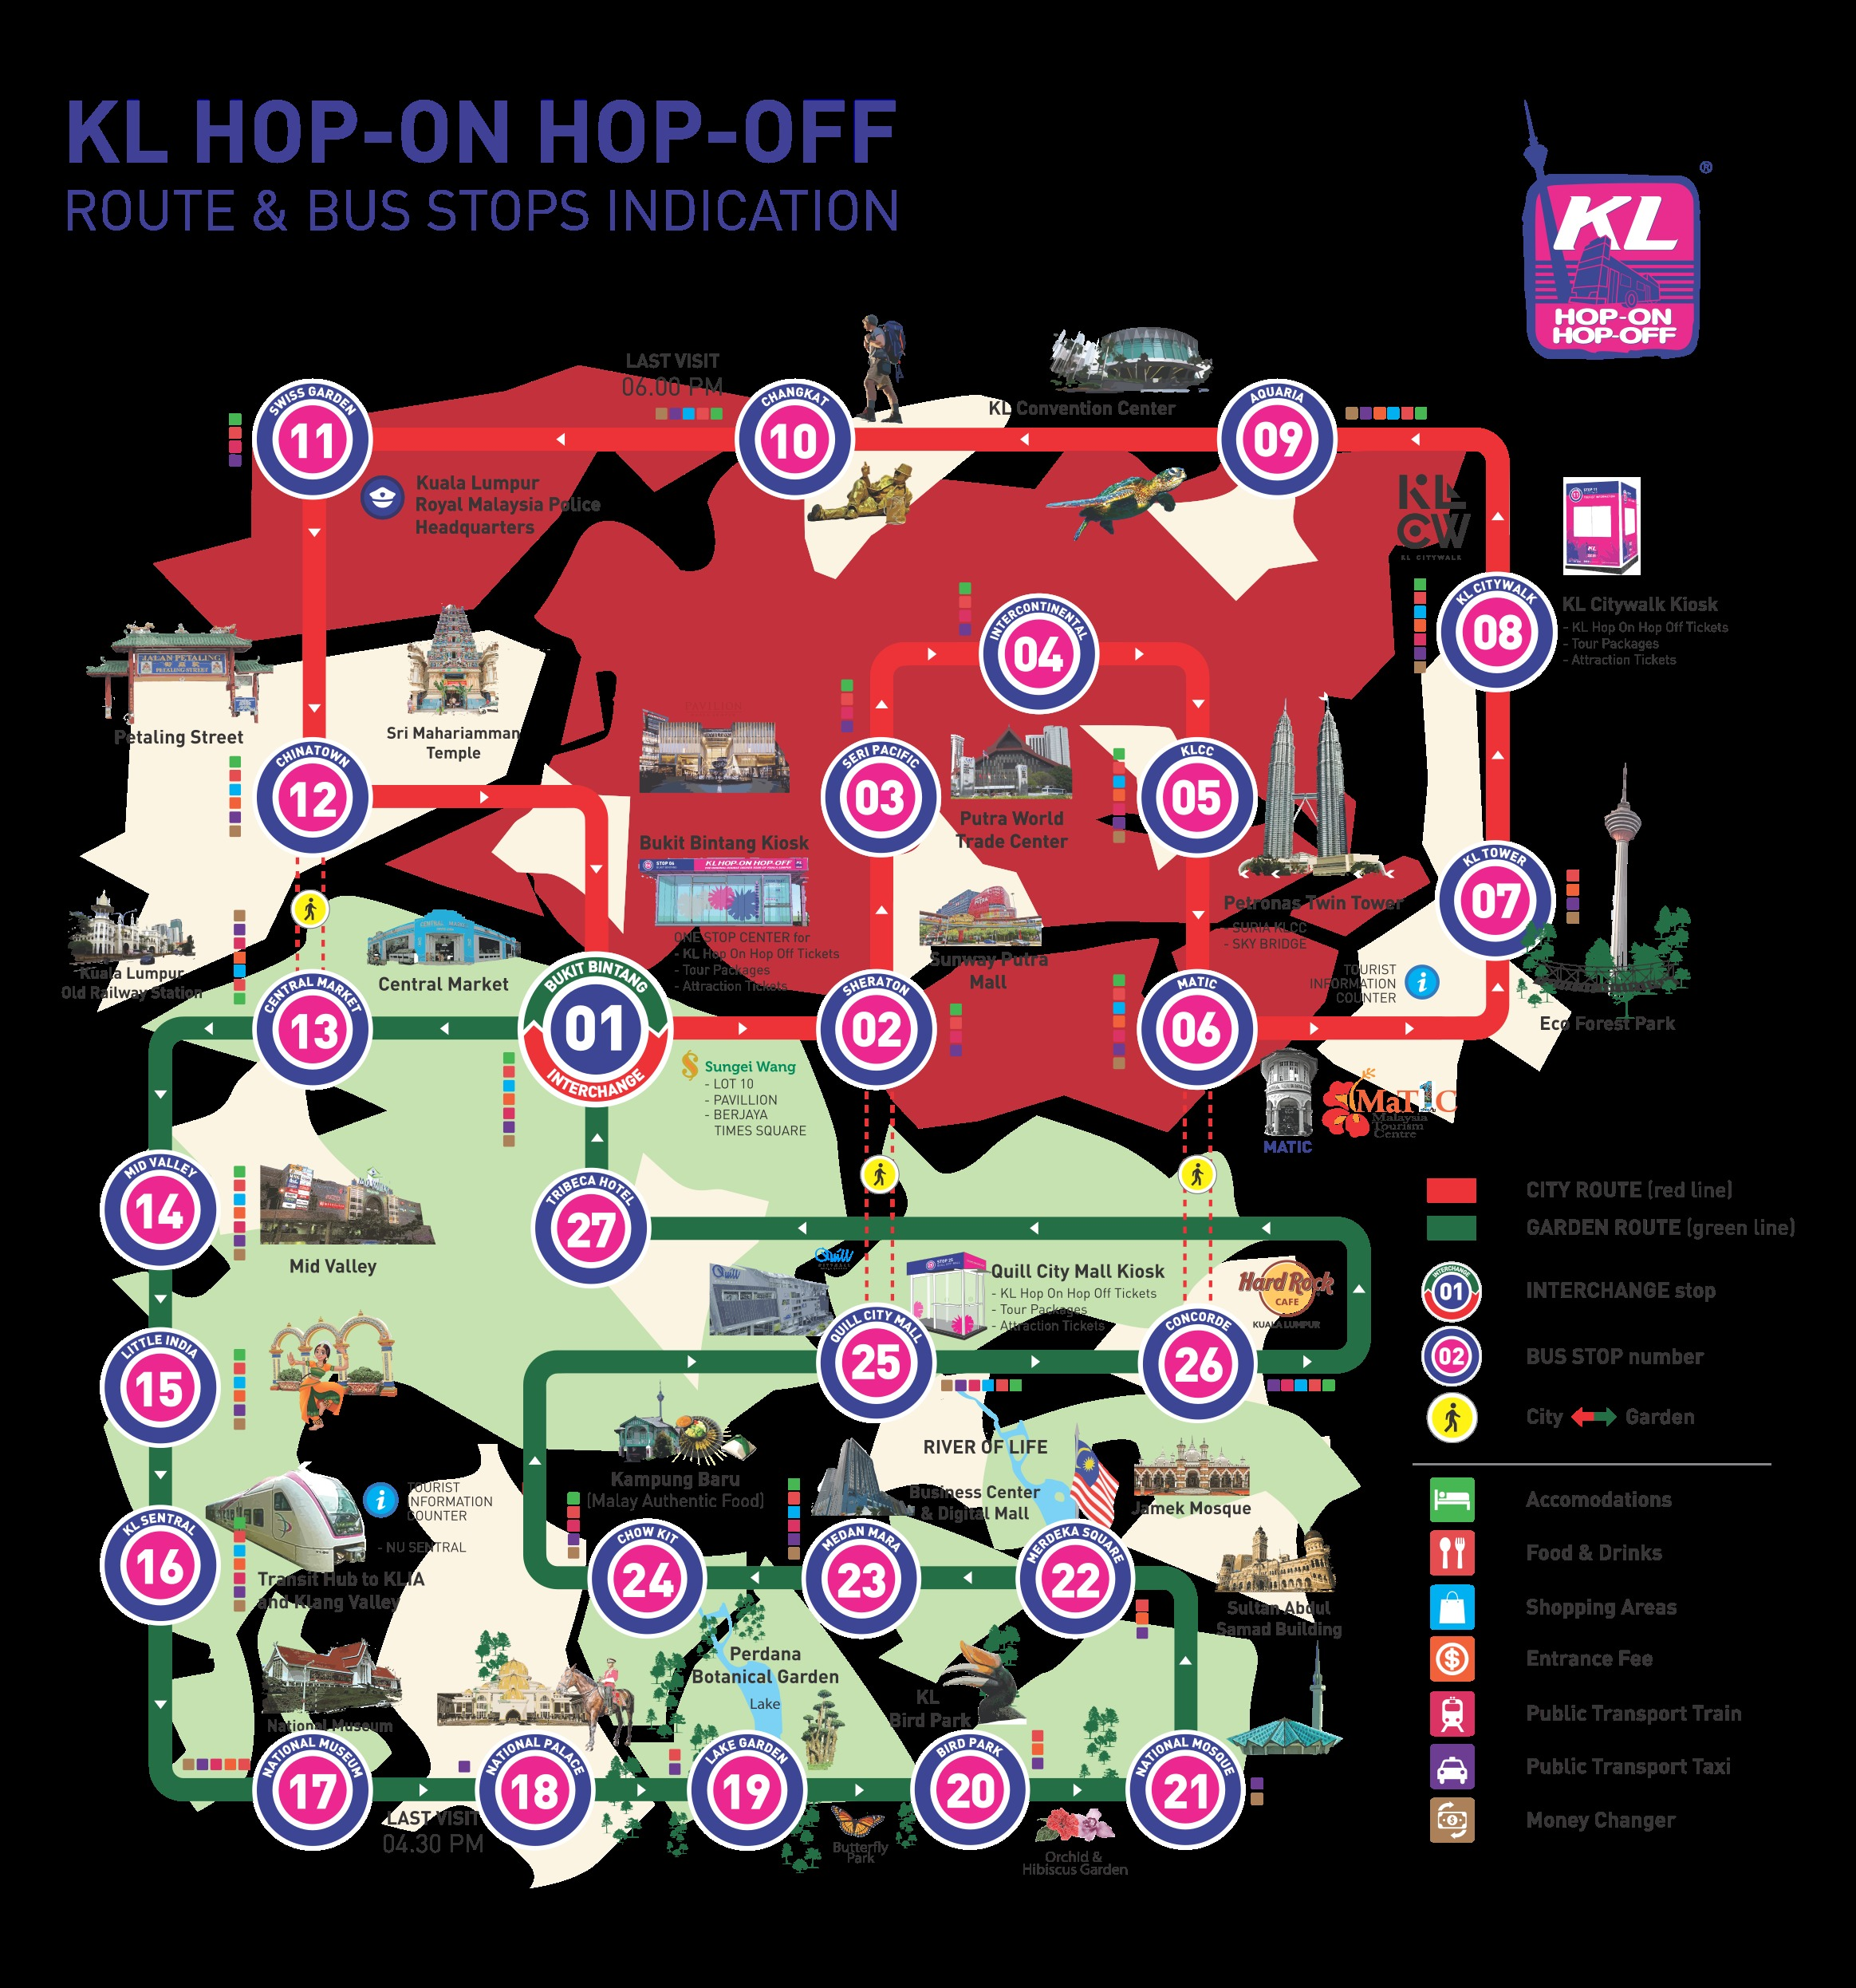 KL Hop On Hop Off Map